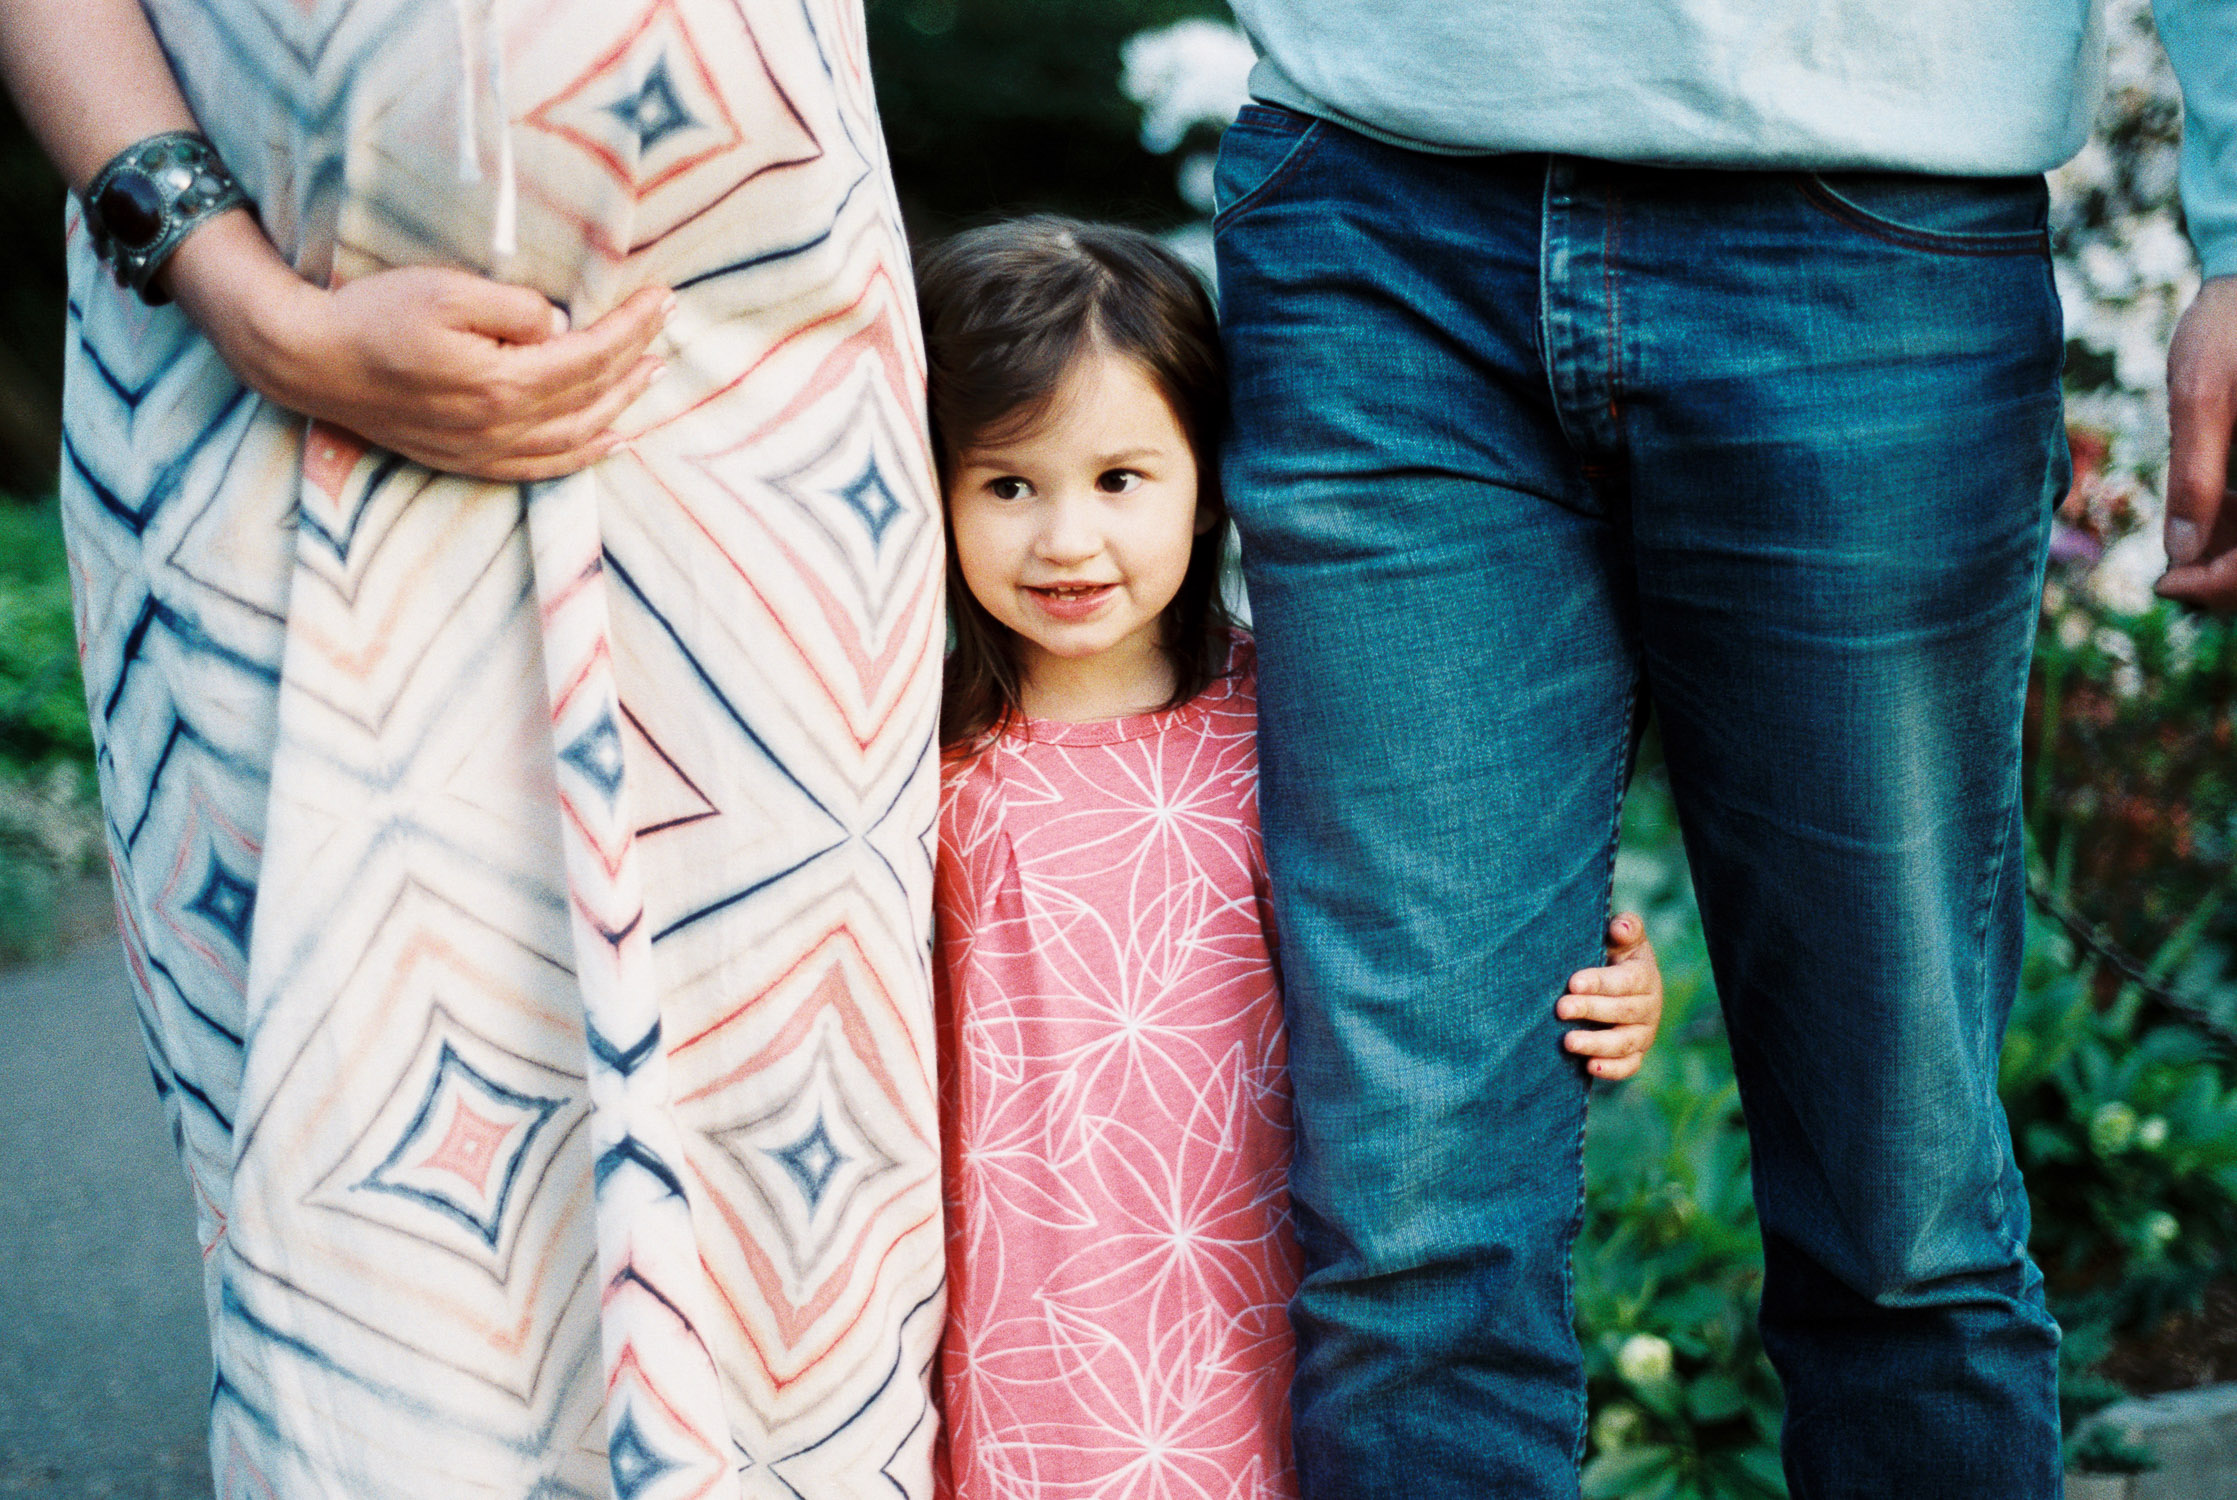 manhattan family maternity photos by wendy g